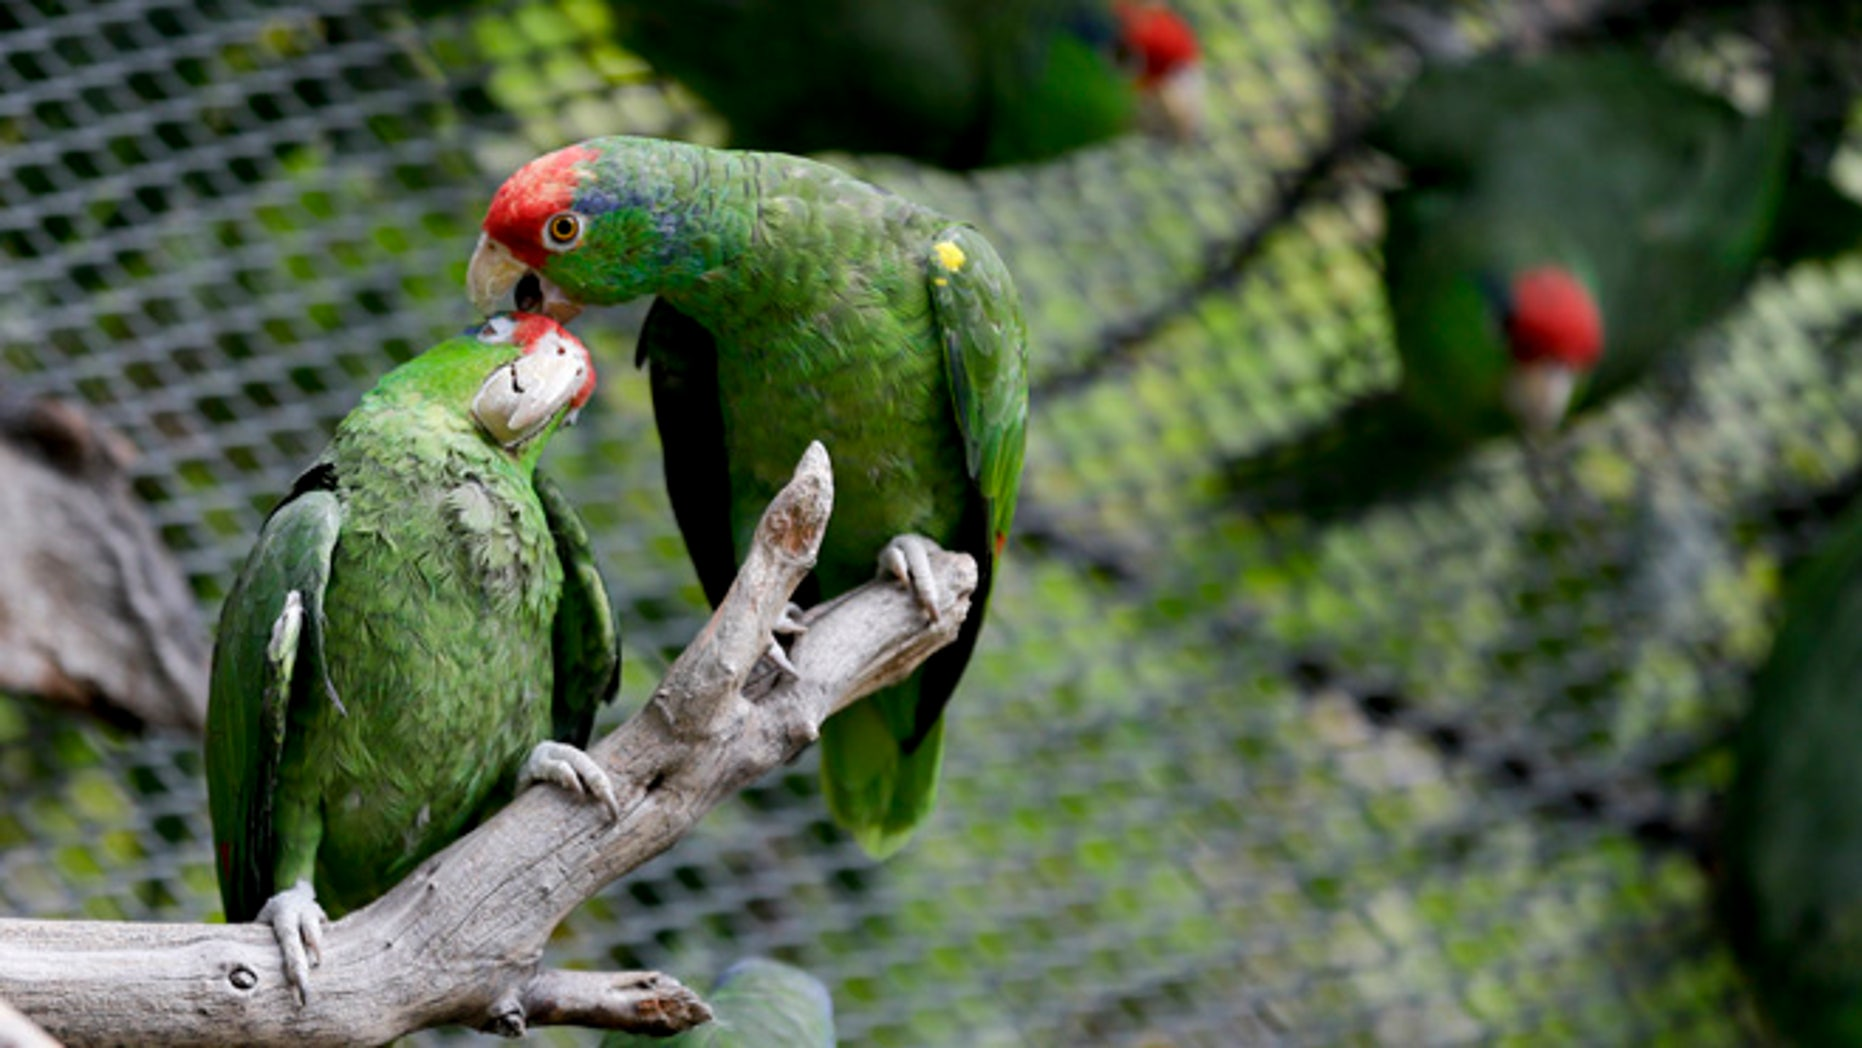 In this Wednesday, March 30, 2016 photo, parrots interact at SoCal Parrot, a parrot-rescue center, in Jamul, Calif. U.S. researchers are launching studies on Mexicoâs red crowned parrot  - a species that has been adapting so well to living in cities in California and Texas after escaping from the pet trade that the population may now rival that in its native country. (AP Photo/Gregory Bull)